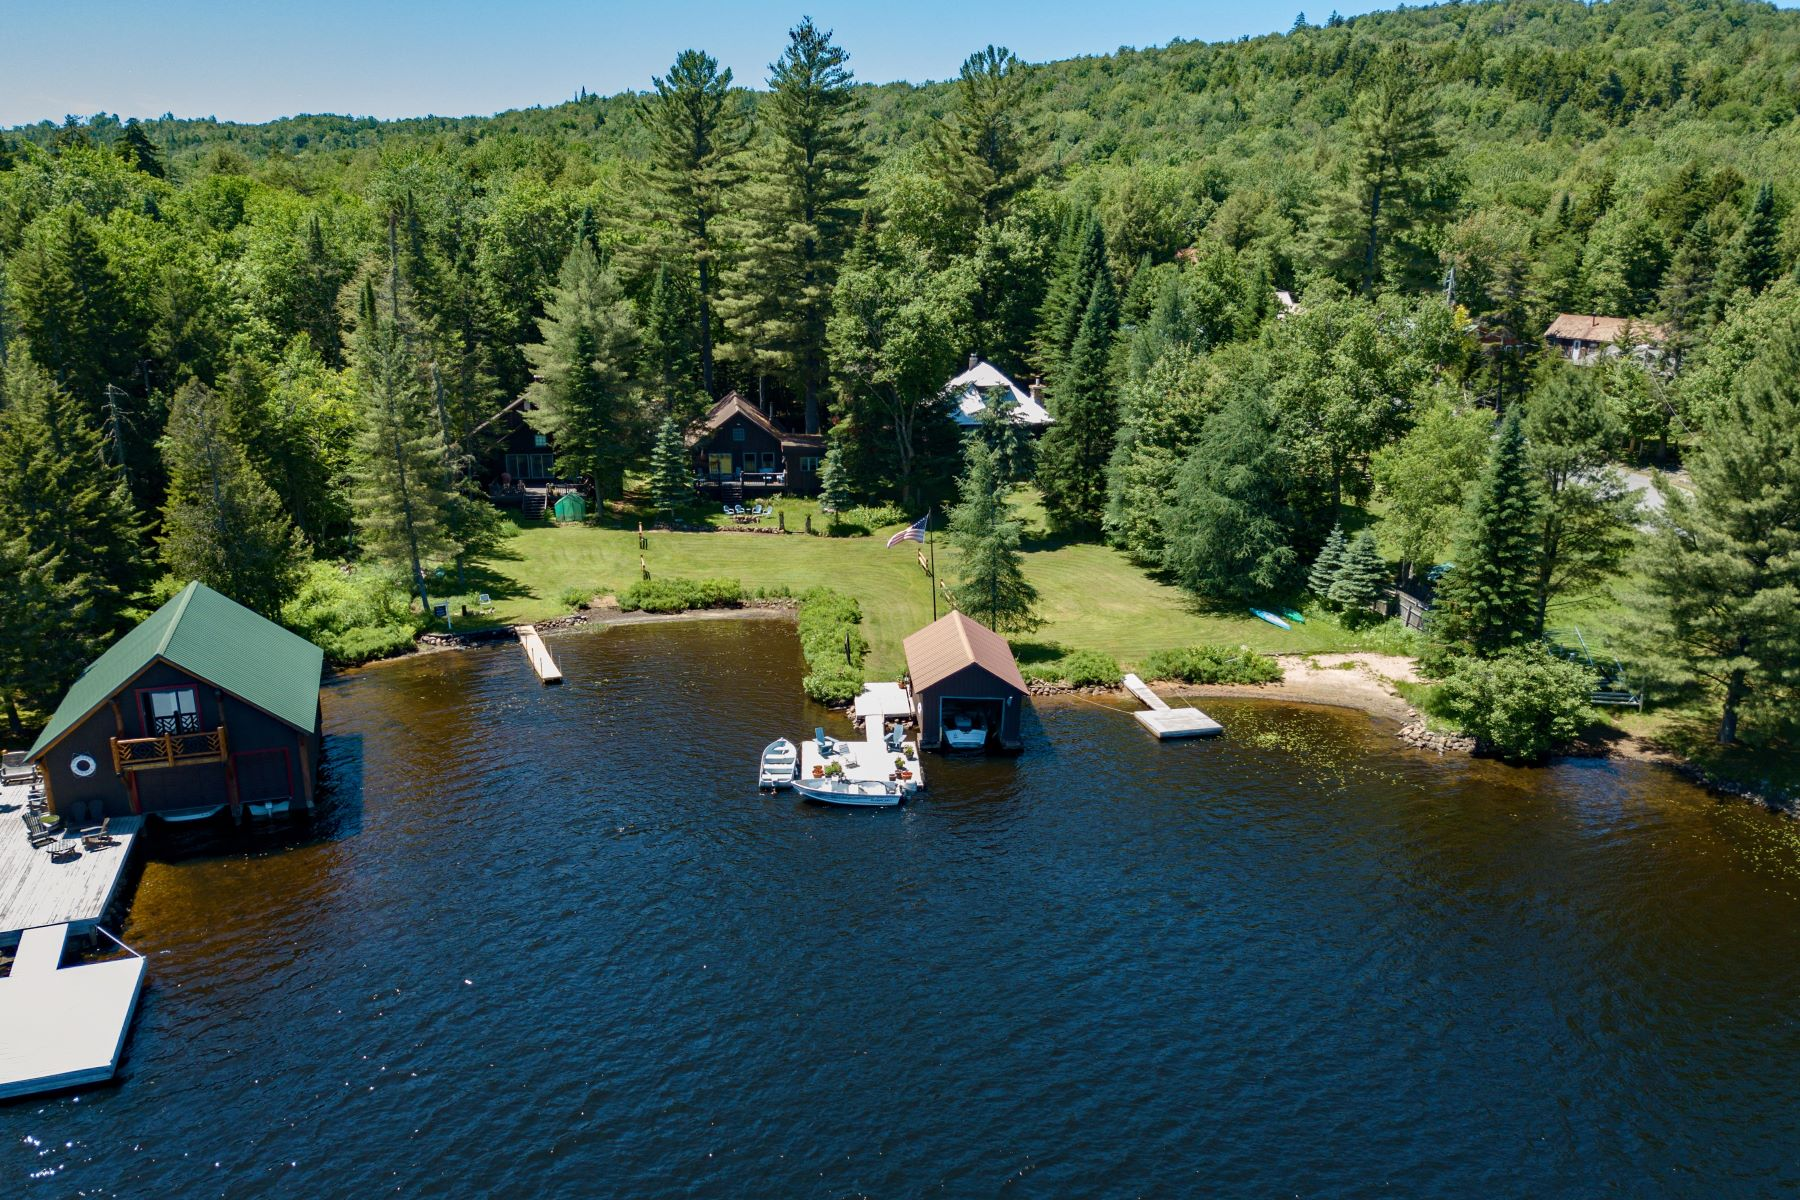 Single Family Homes for Sale at Big Moose 3 Bedroom Waterfront Cottage 142 Glenmore Road Big Moose, New York 13331 United States